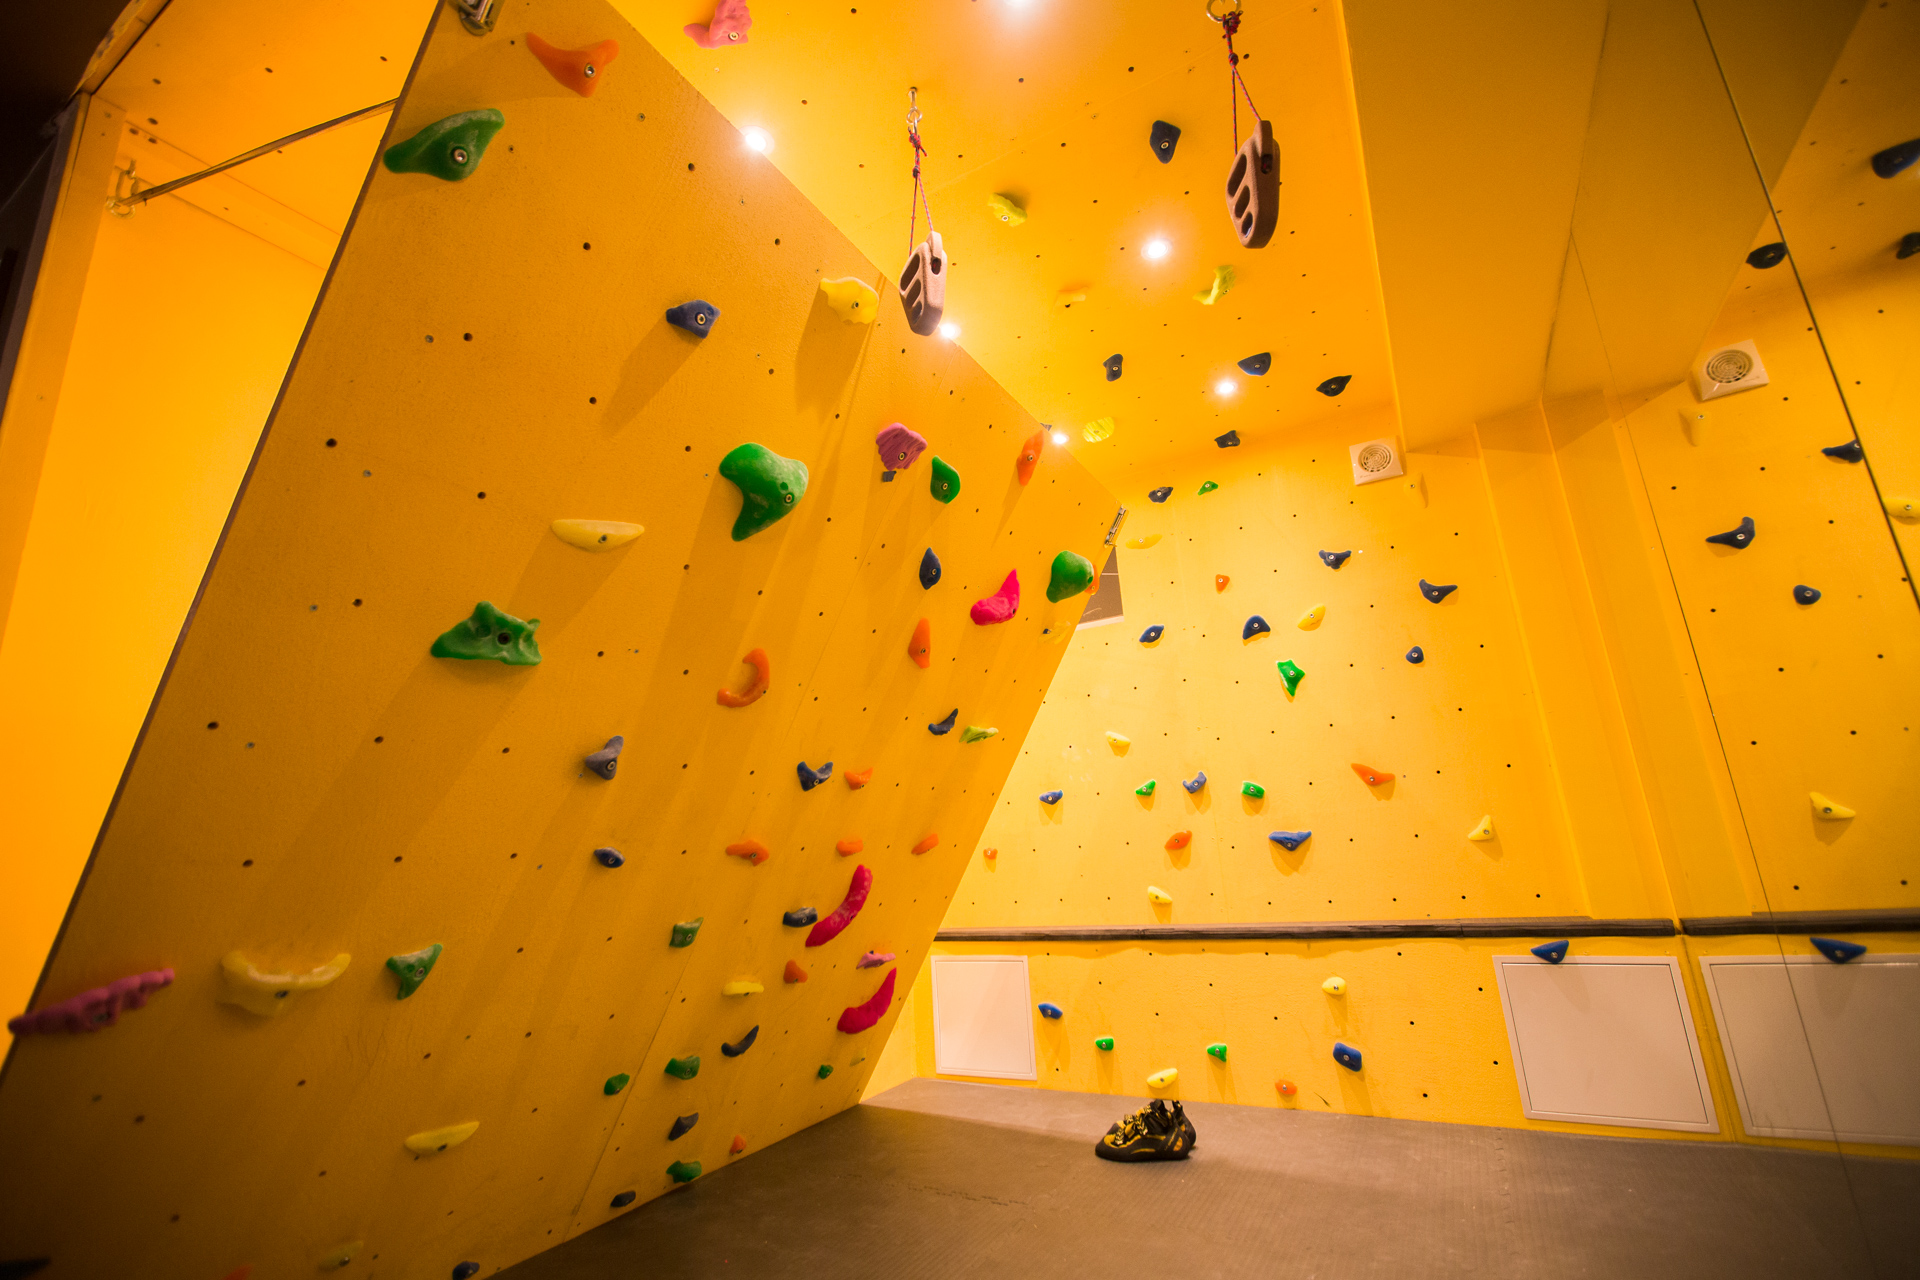 Rock Climb at Home with an Inclined Bouldering Wall